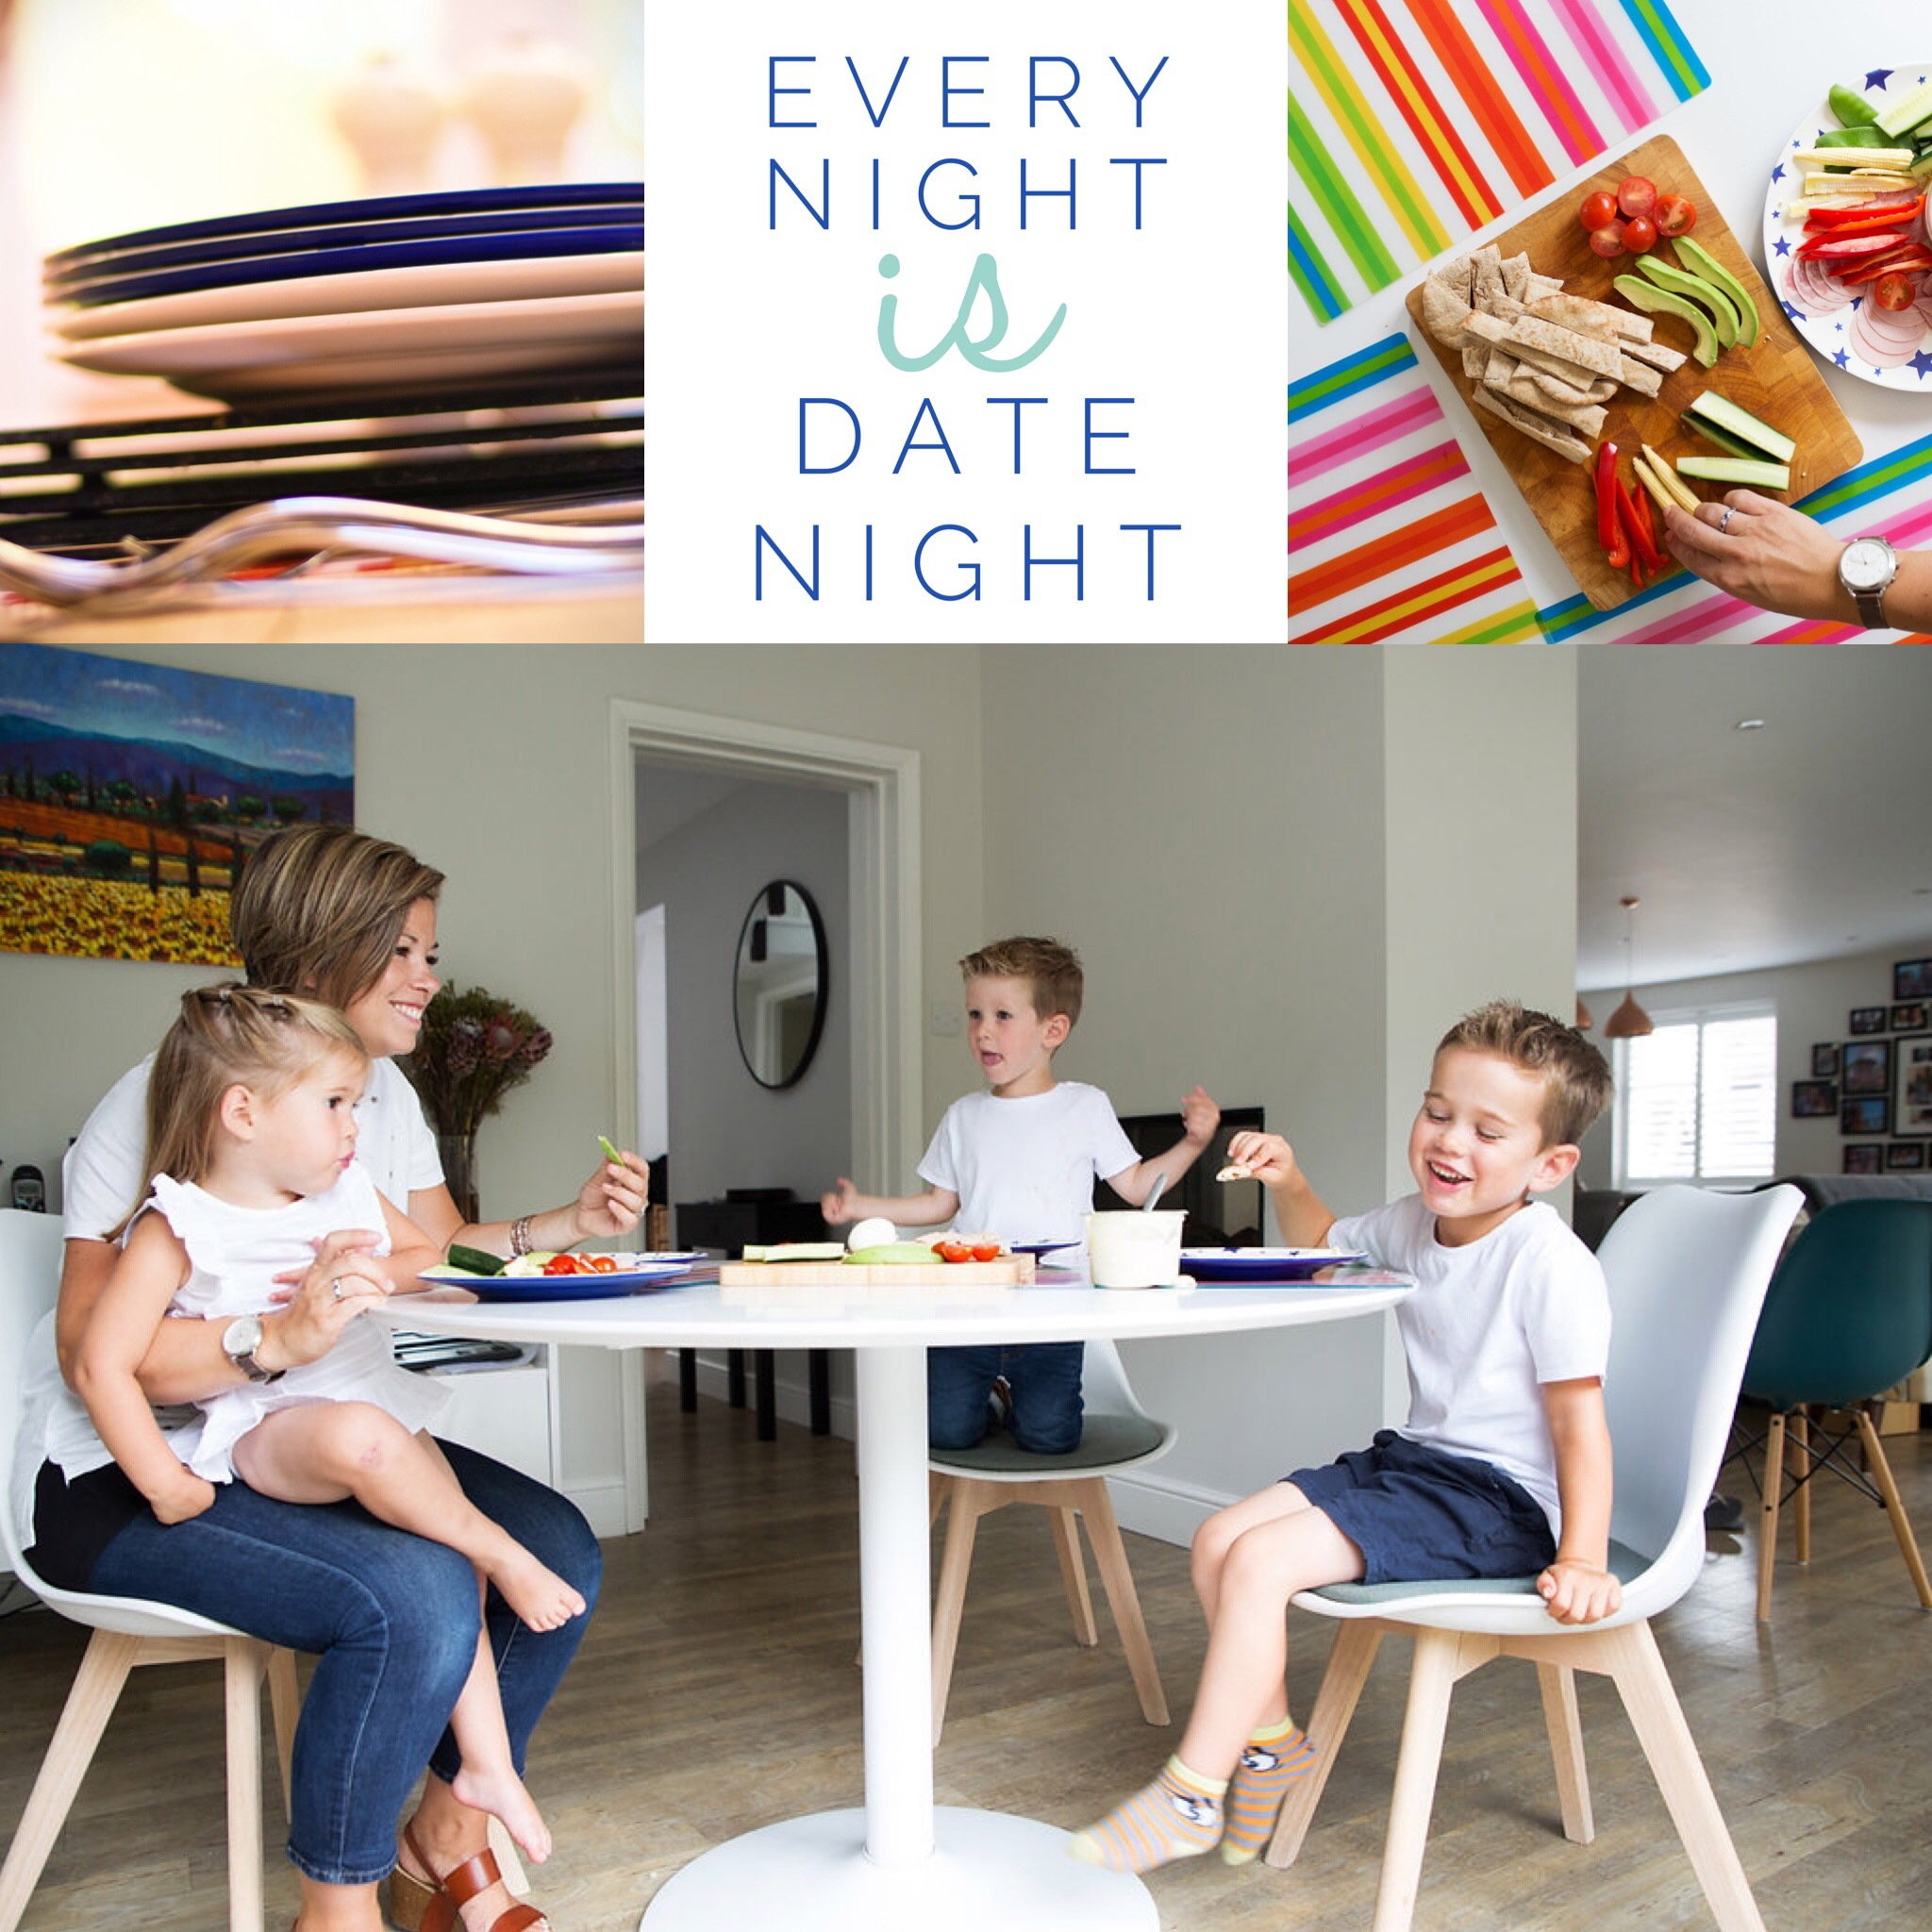 Every Night is Date Night